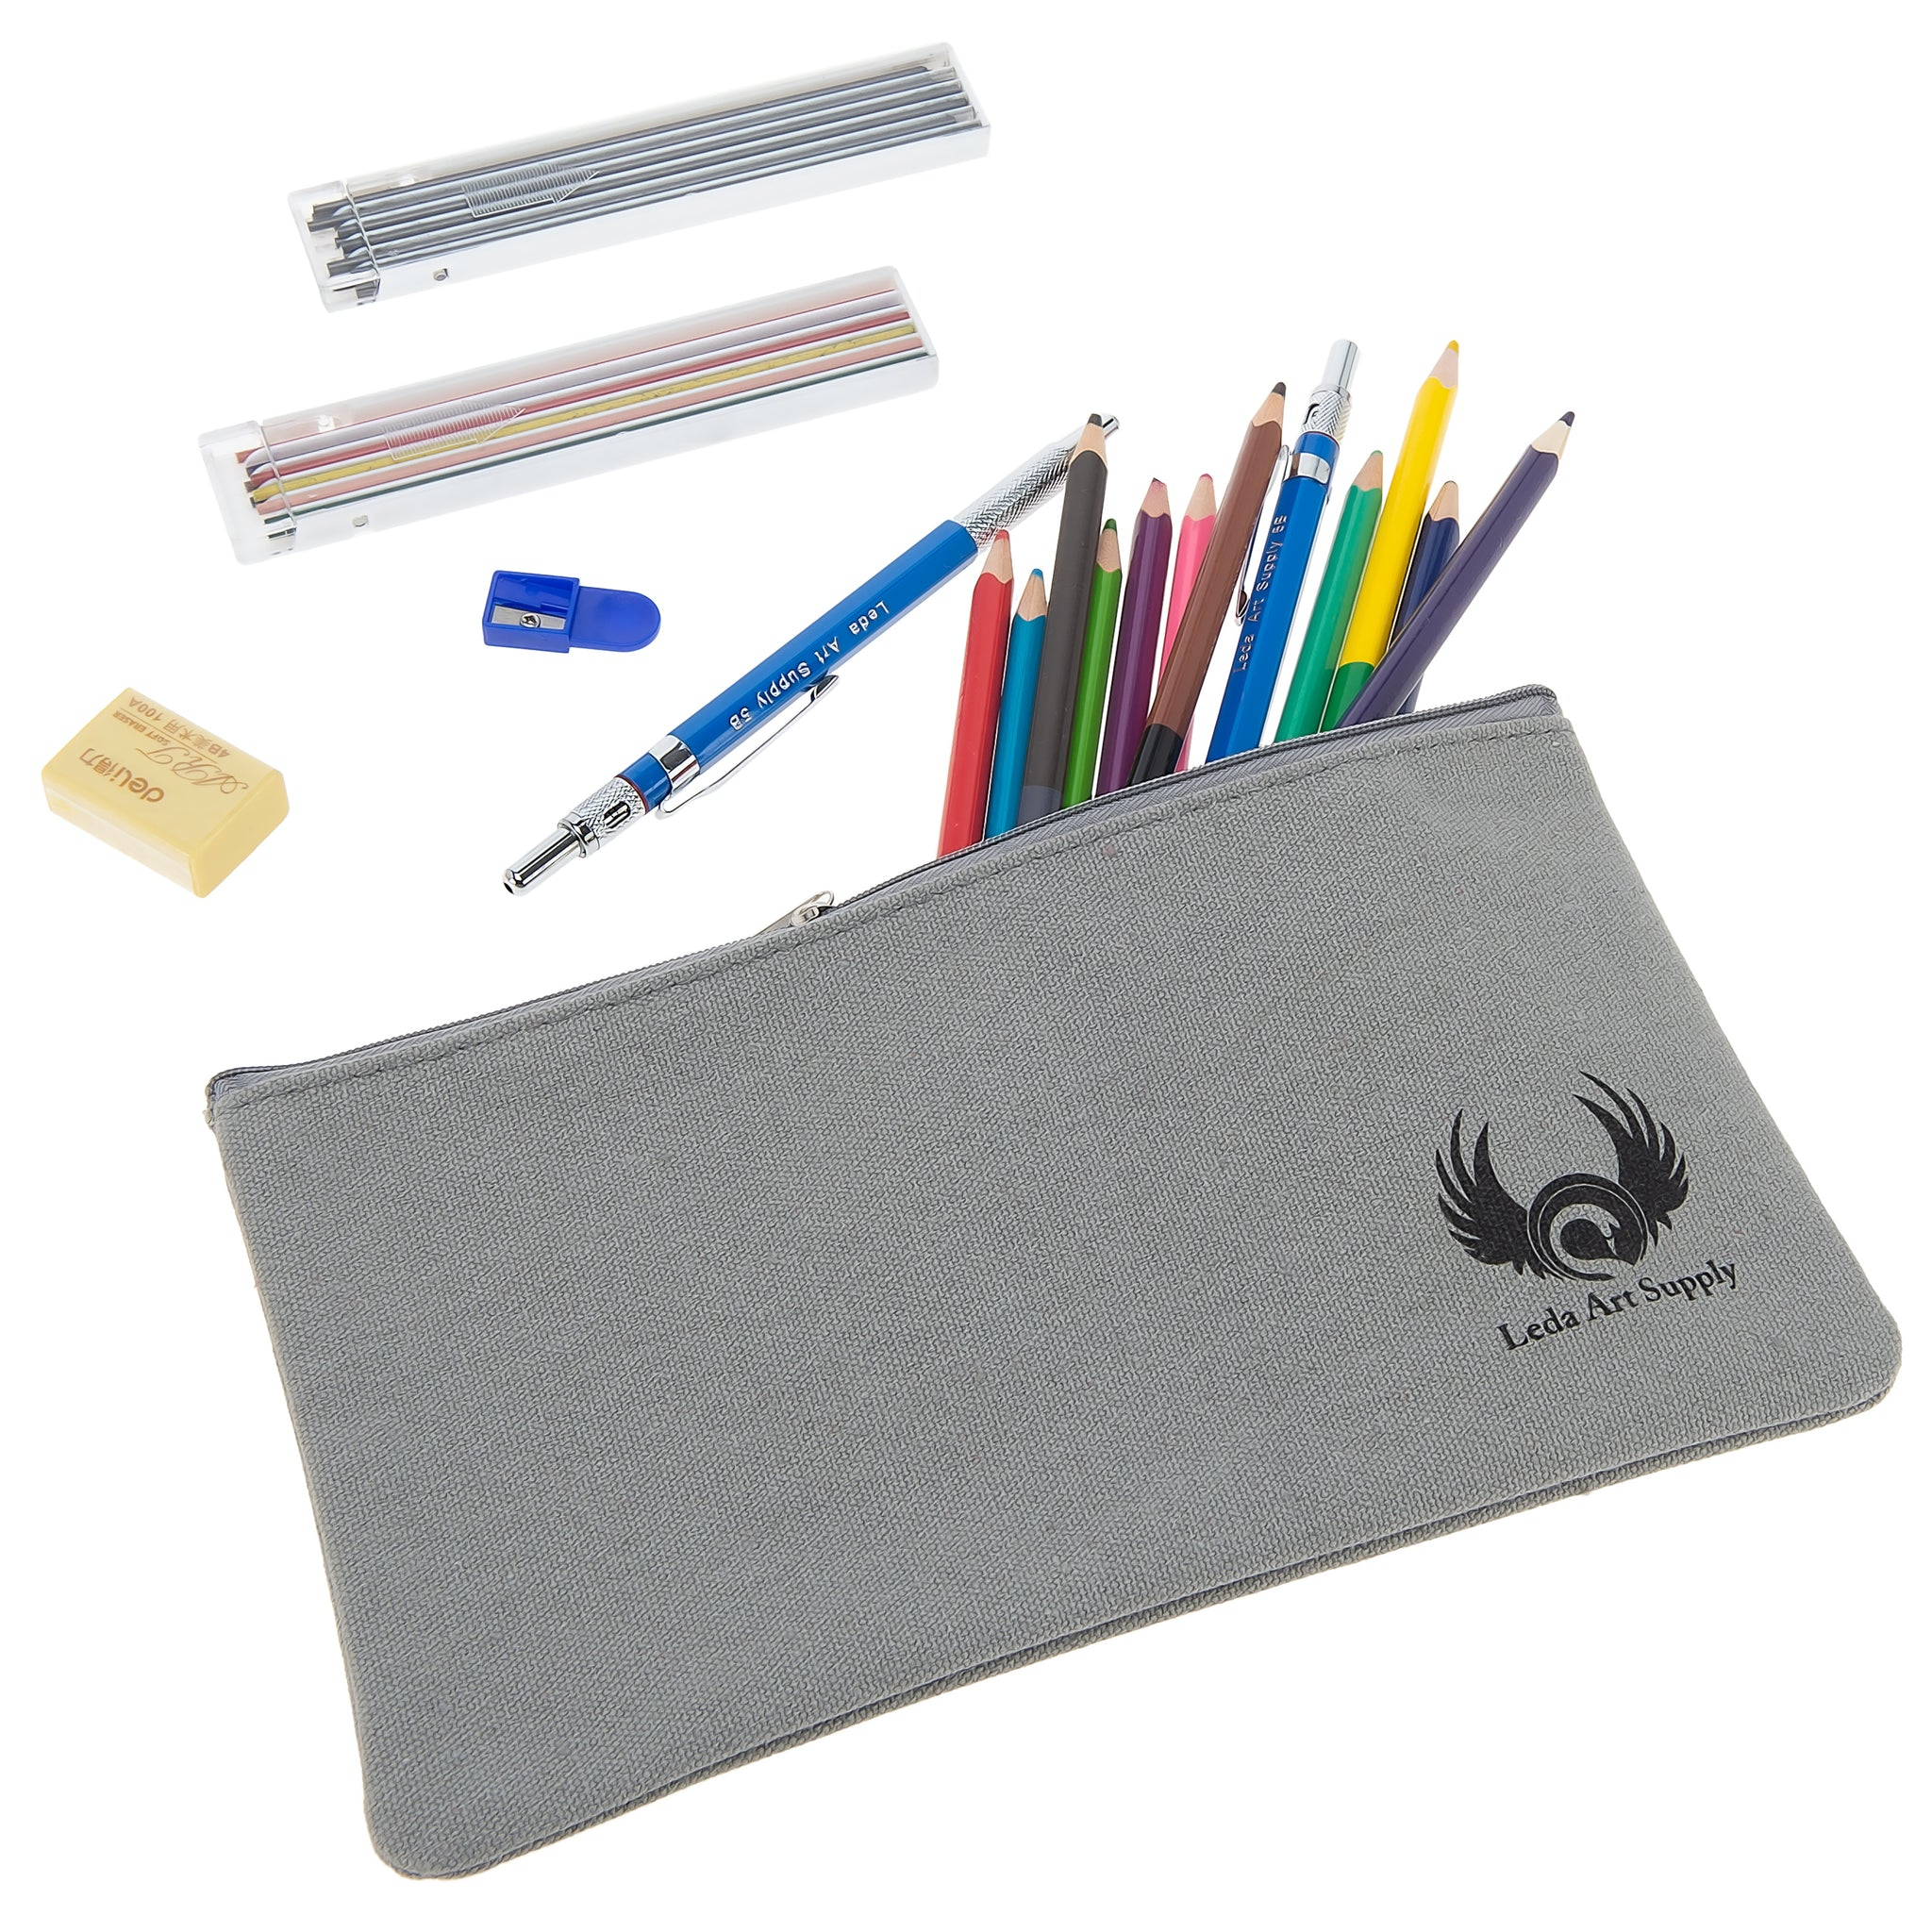 Canvas Pencil Case Large Enough for a Boat Load of Writing Utensils